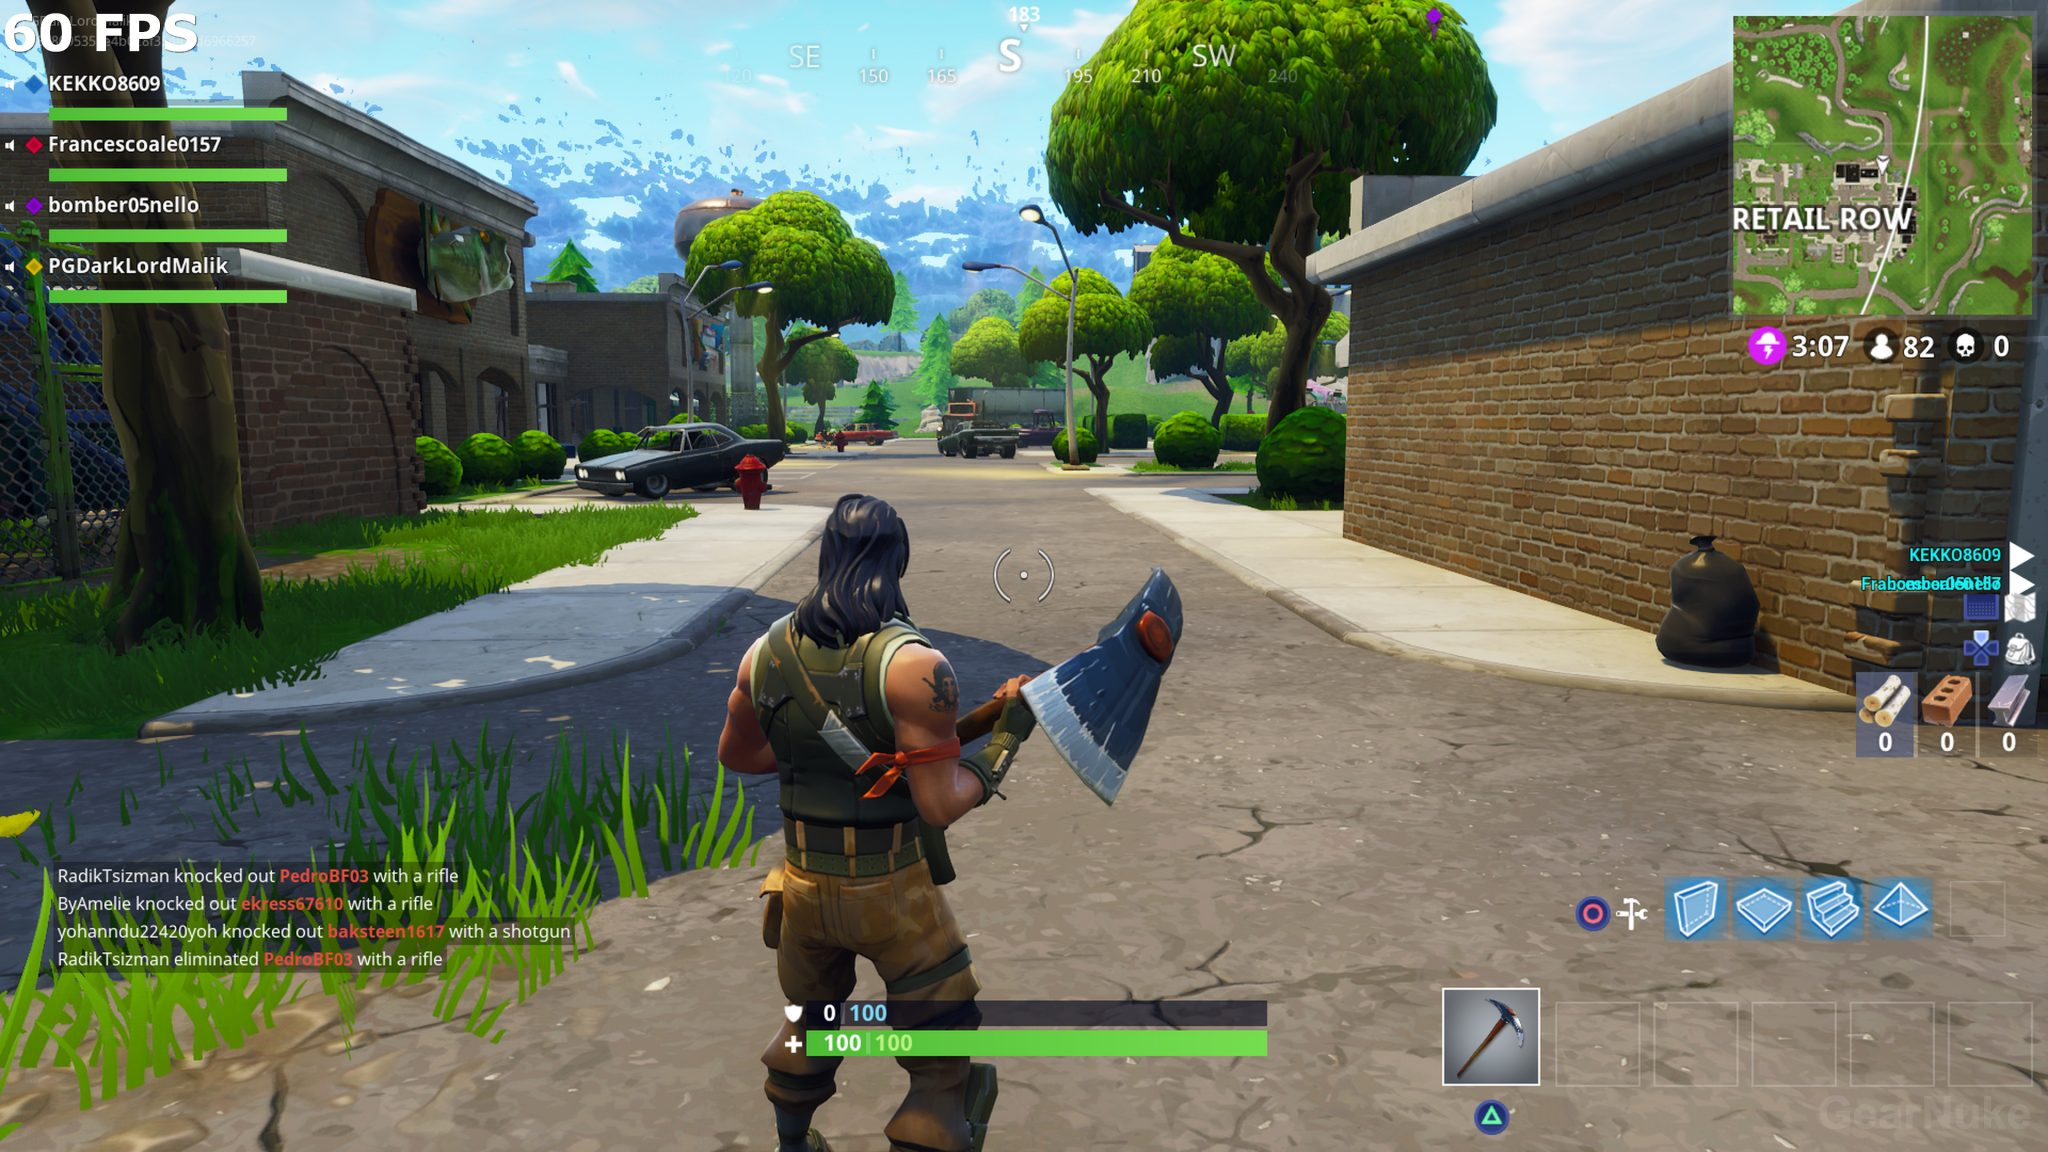 how to fix resolution on fortnite ps4